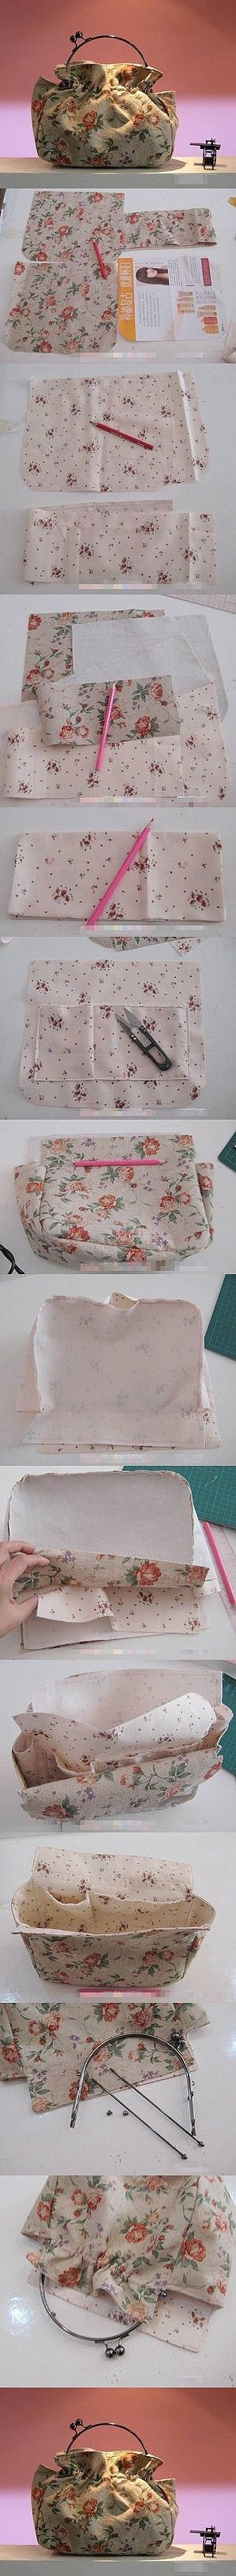 DIY Handbag diy craft crafts craft ideas easy crafts diy ideas diy crafts fashion crafts craft handbag diy purse